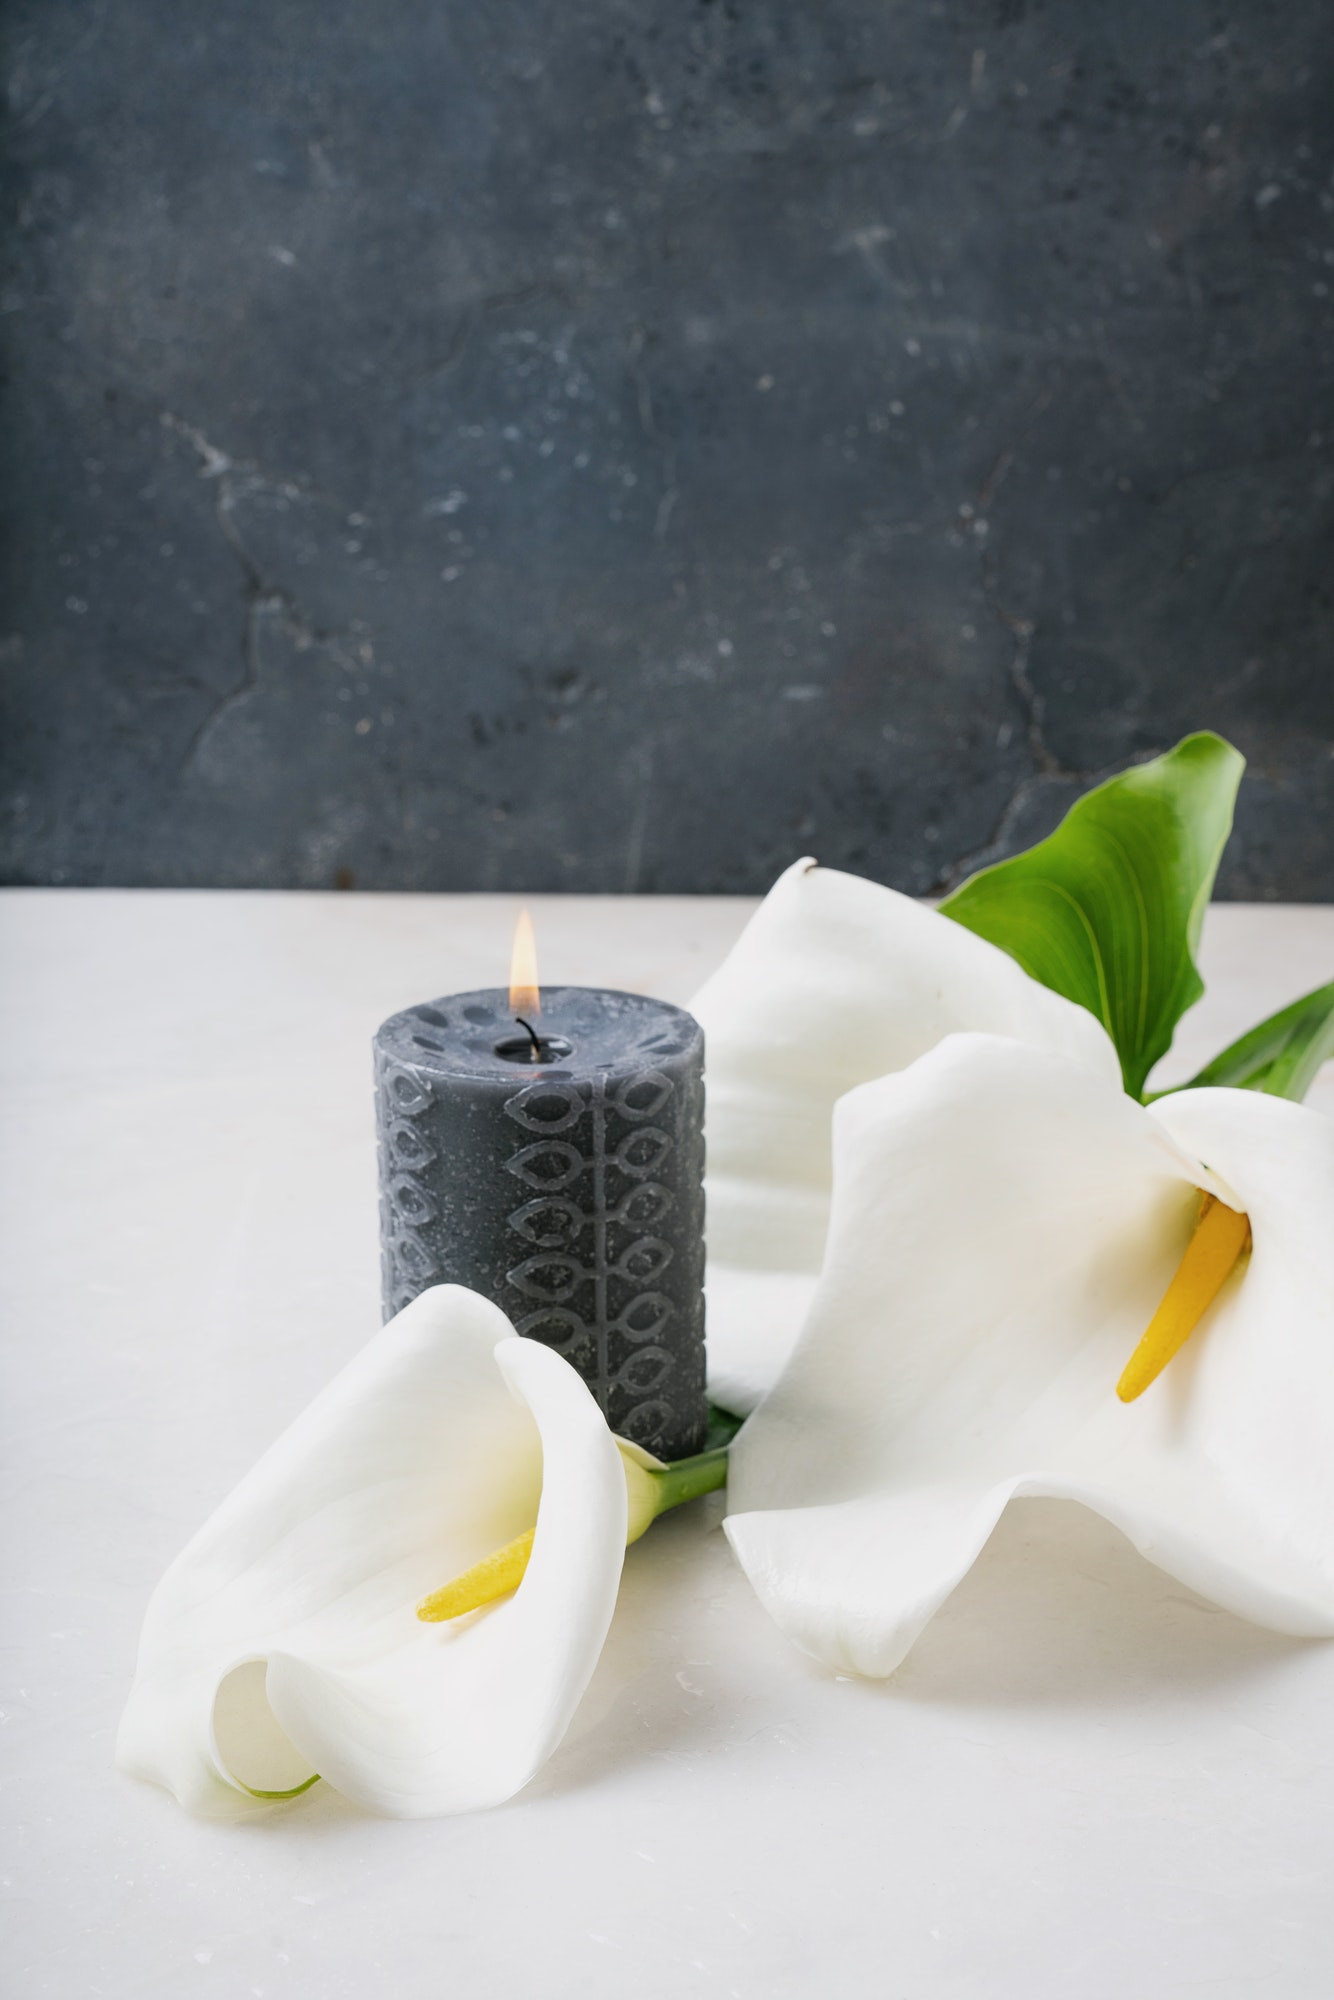 White Calla Lilly flowers with burning black candle